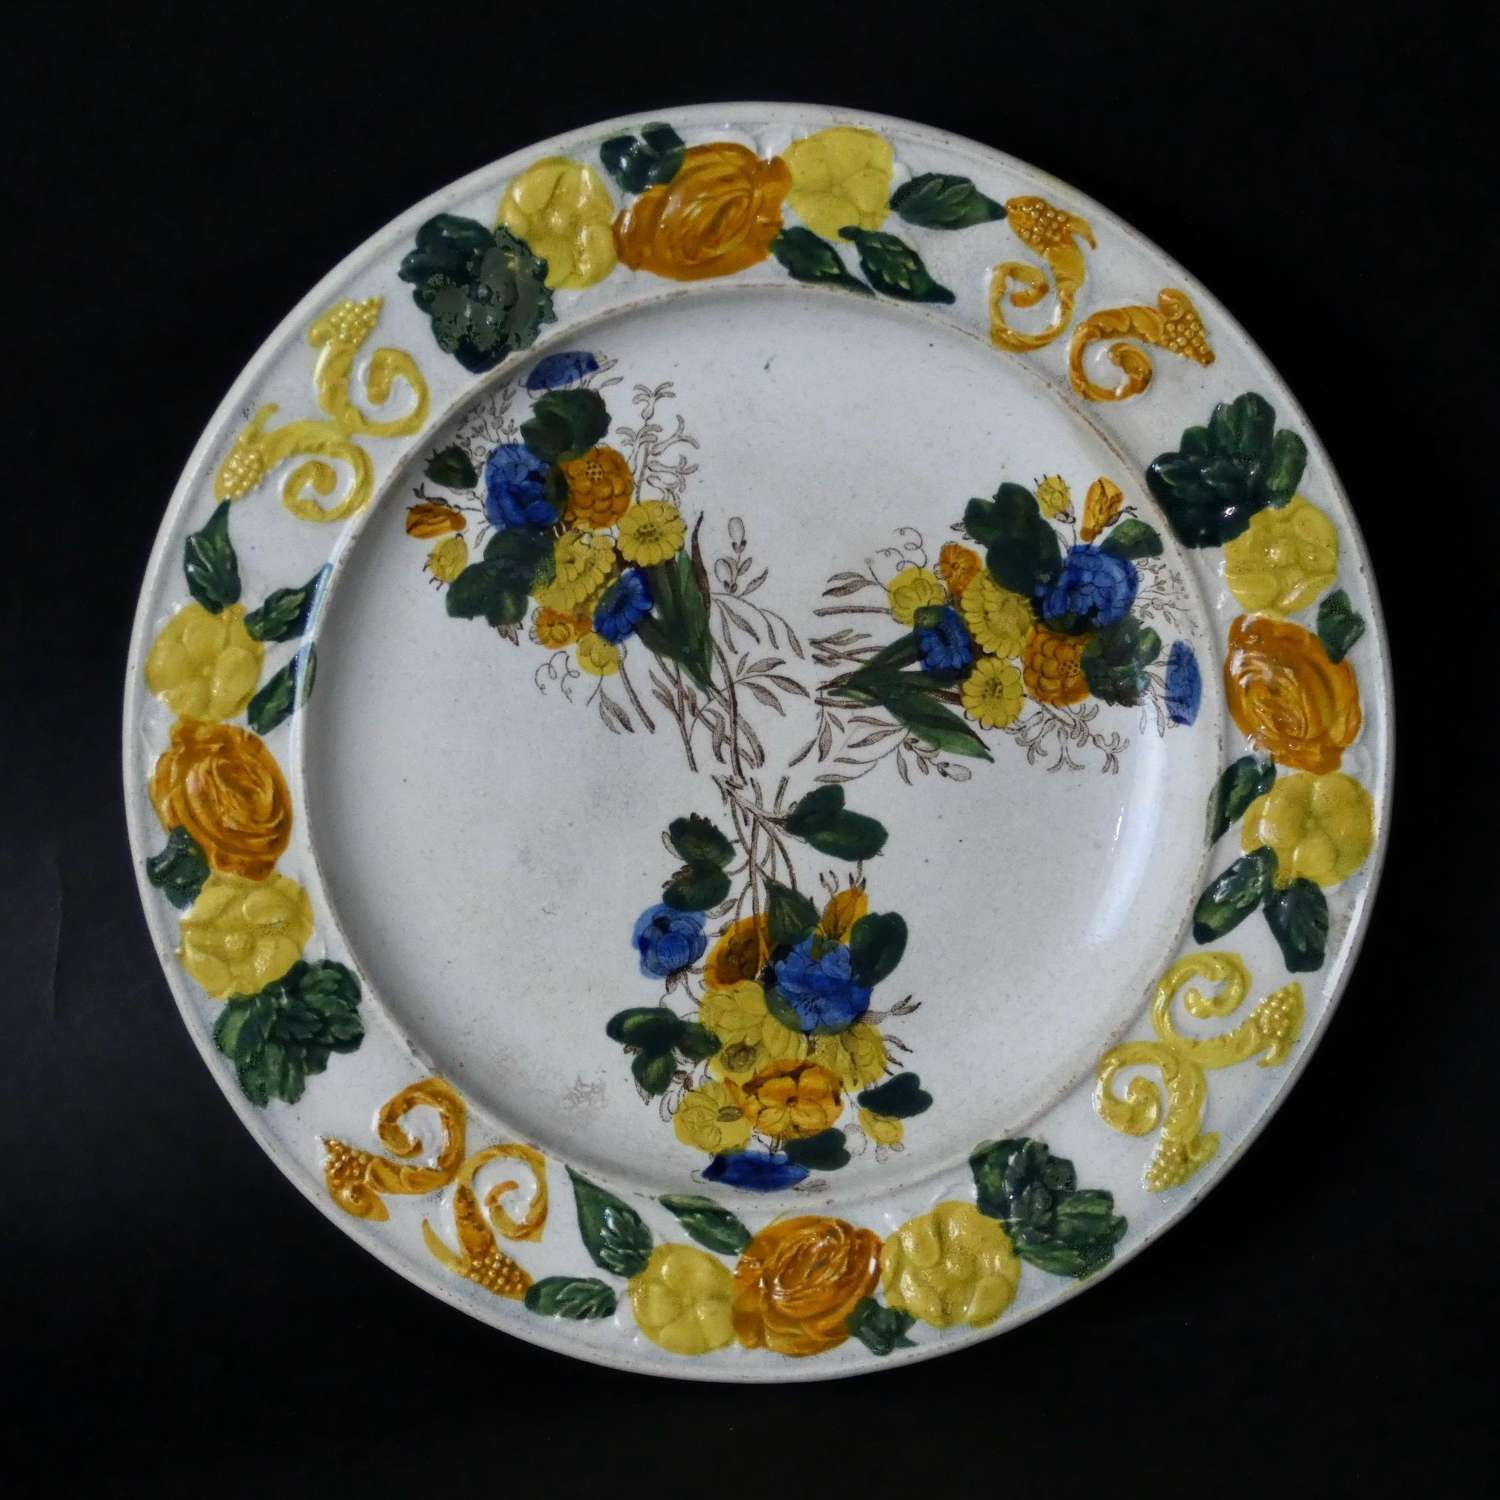 Child's plate with bouquets of flowers